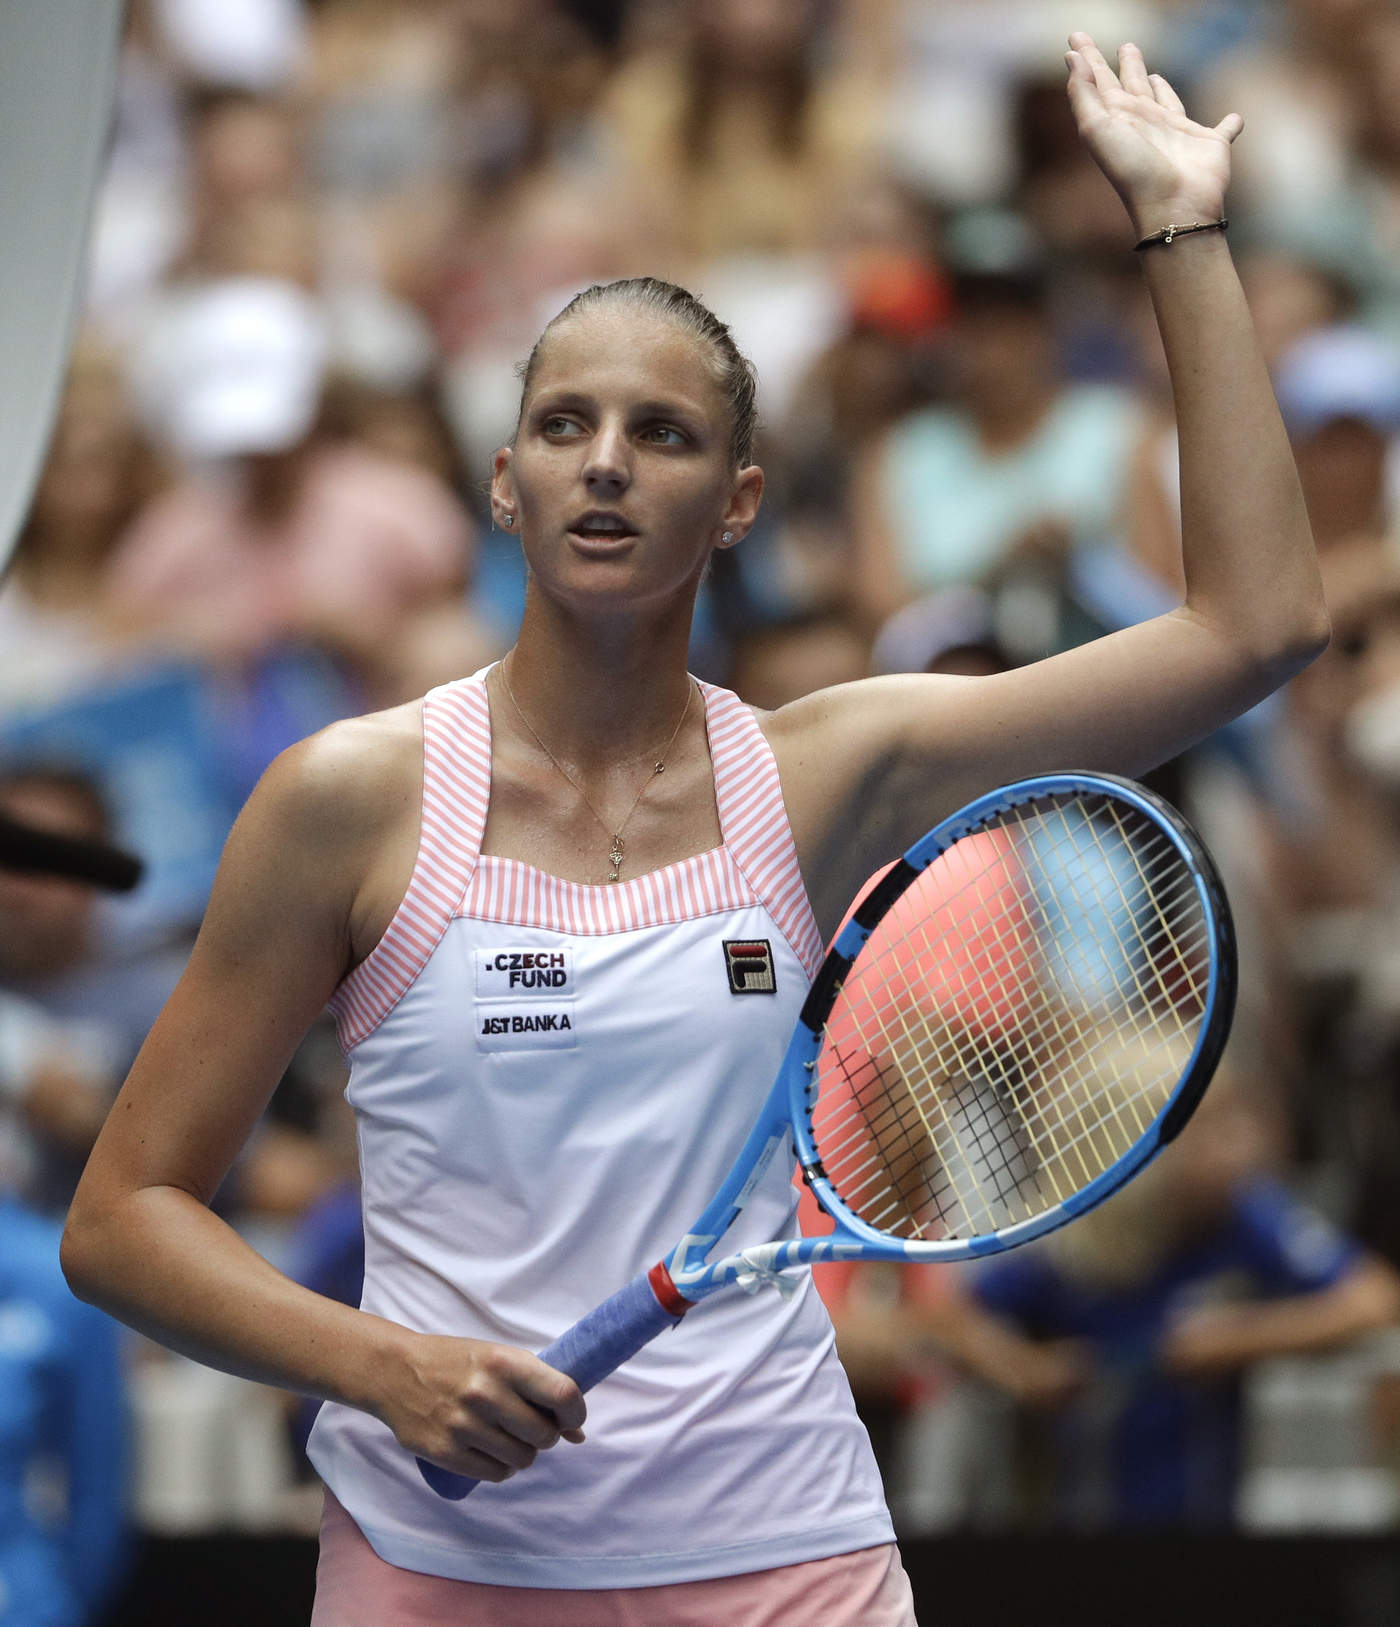 Karolina Pliskova se impuso 4-6, 6-1, 6-0 a Madison Brengle. (AP)